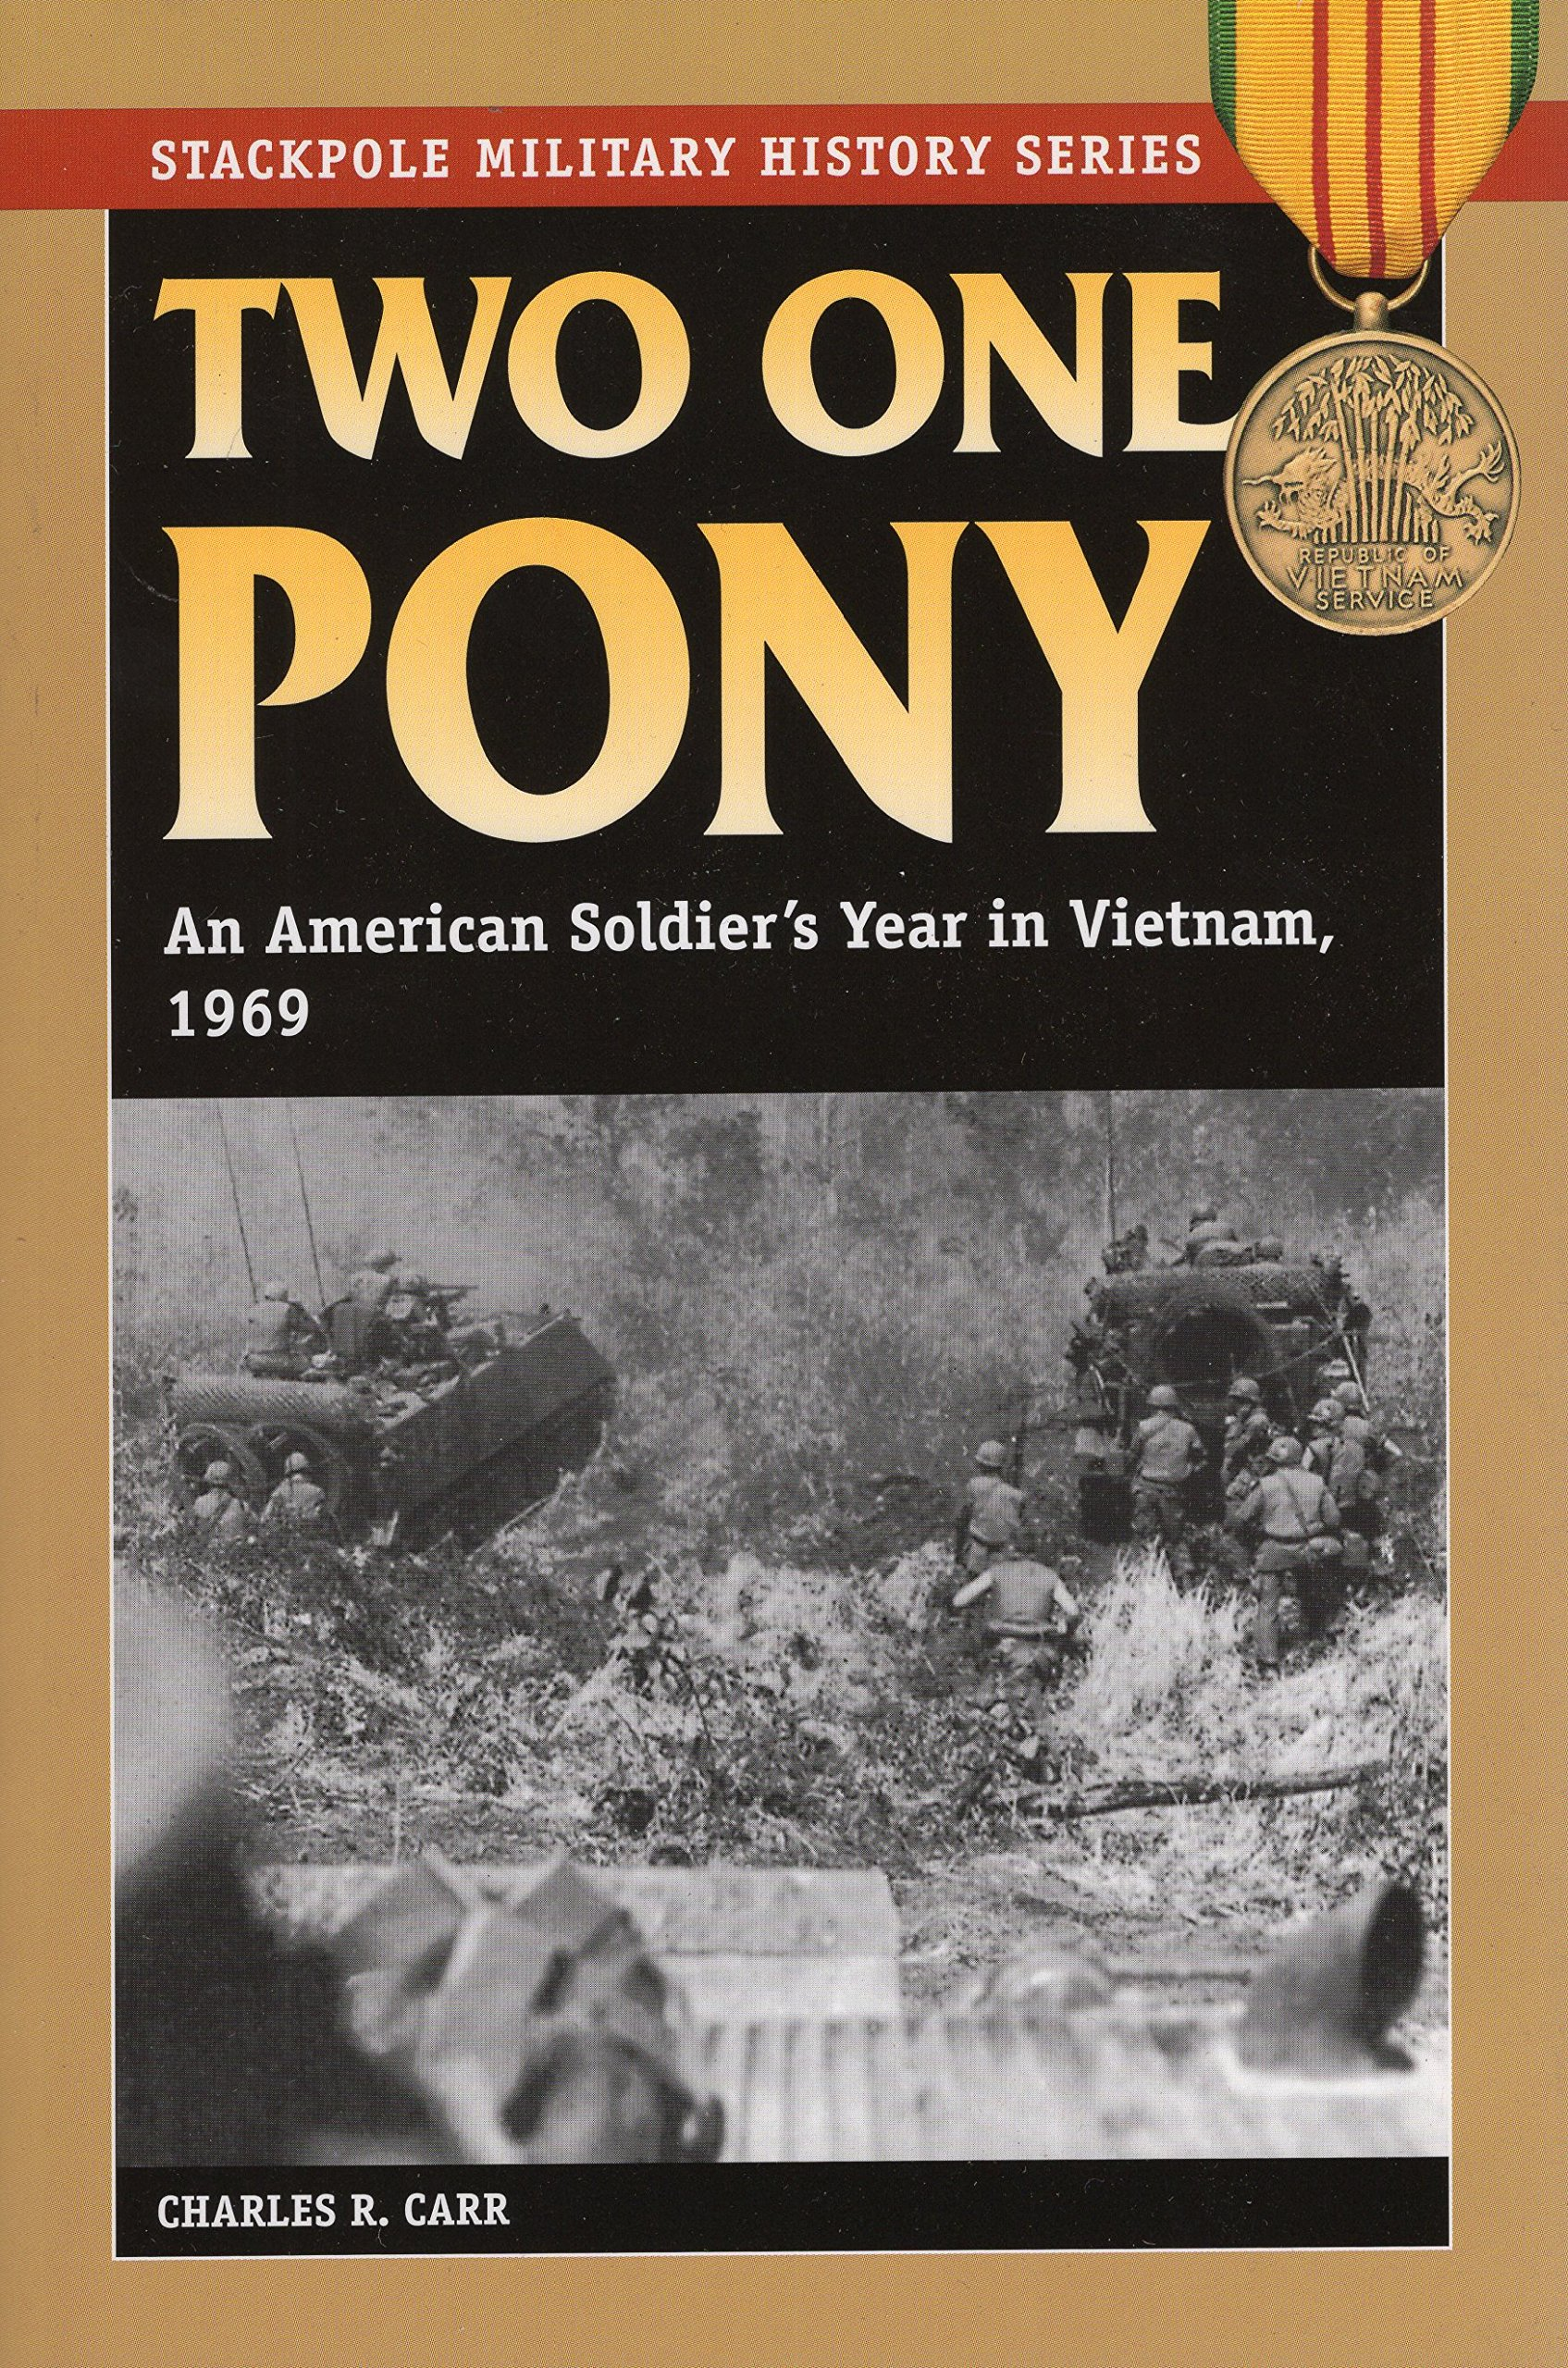 Read Online Two One Pony: An American Soldier's Year in Vietnam, 1969 (Stackpole Military History Series) ebook